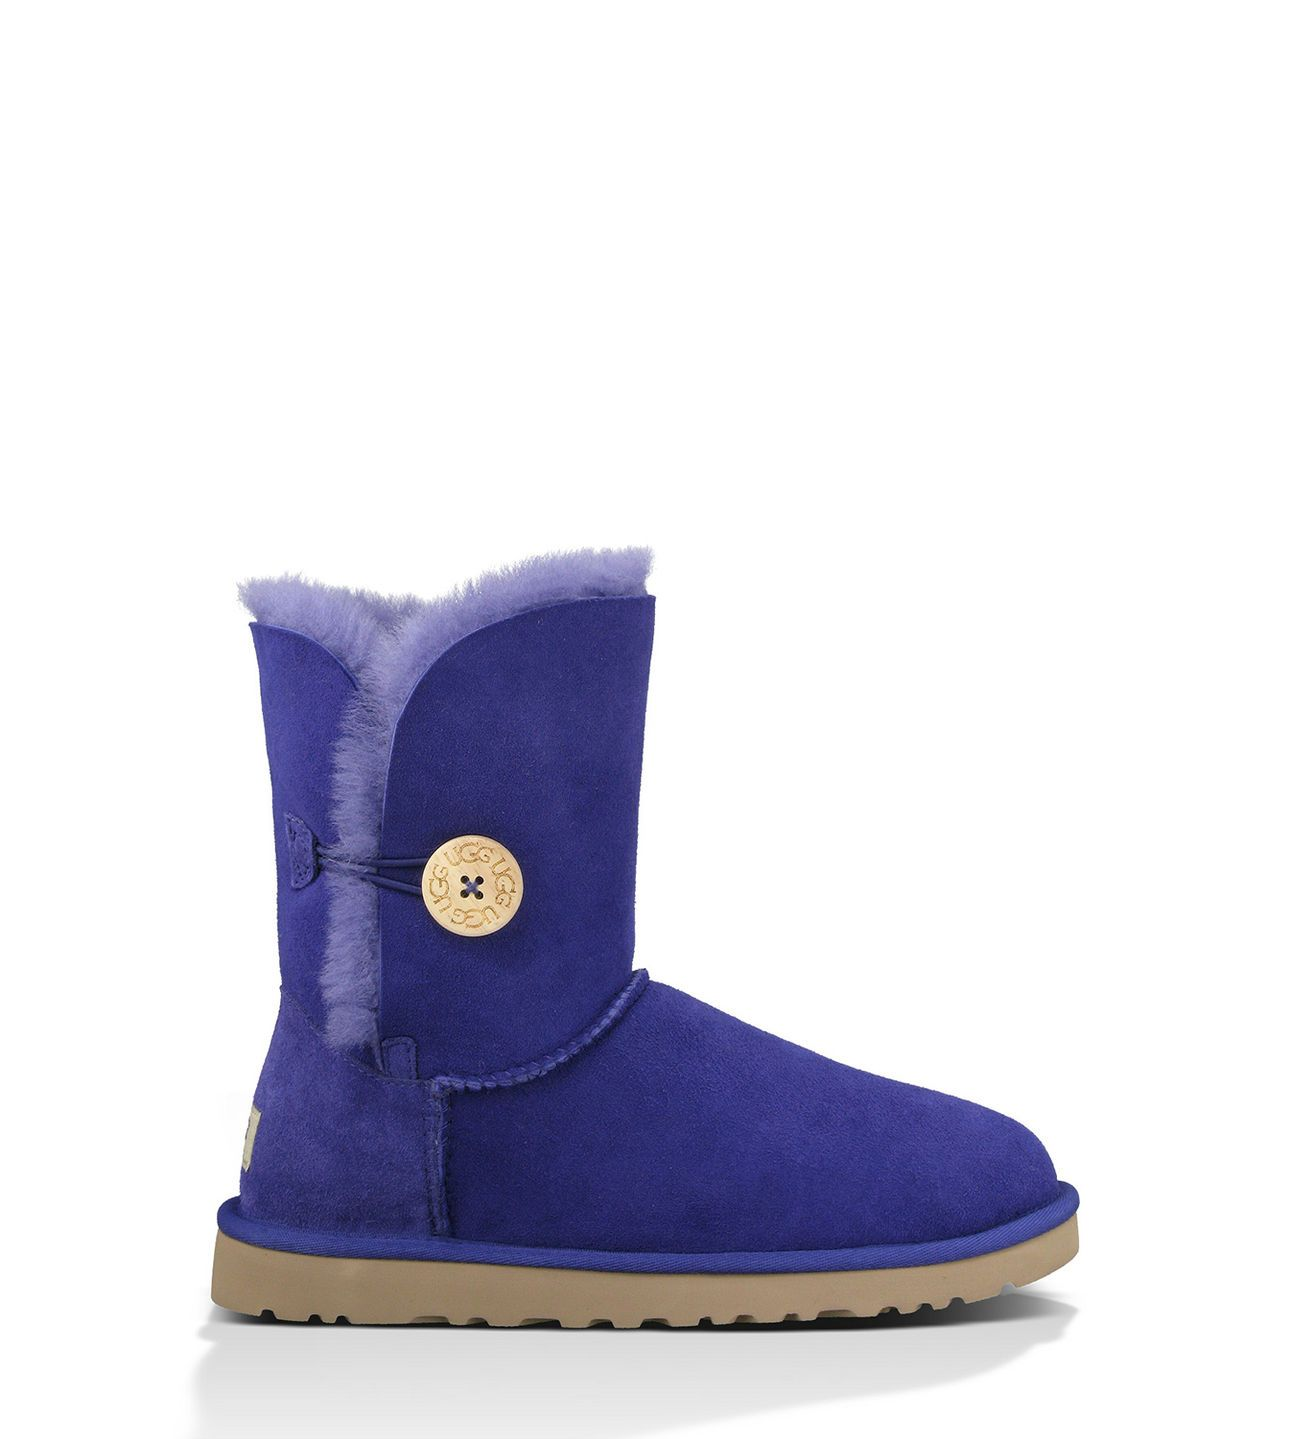 cheap ugg australia boots uk